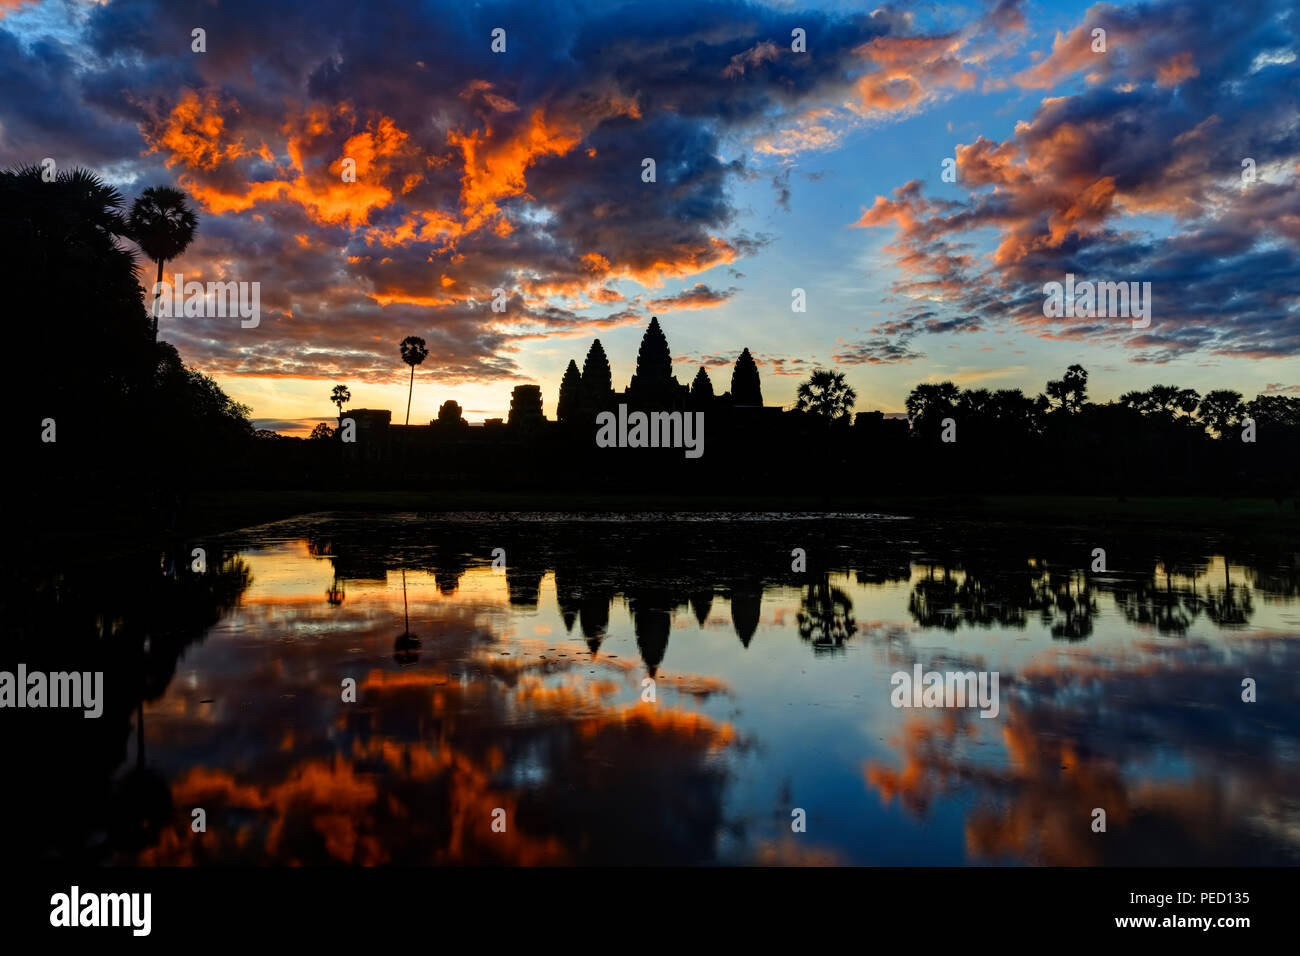 Amazing Sunrise over Angkor Wat Temple, Siem Reap, Cambodia - Stock Image